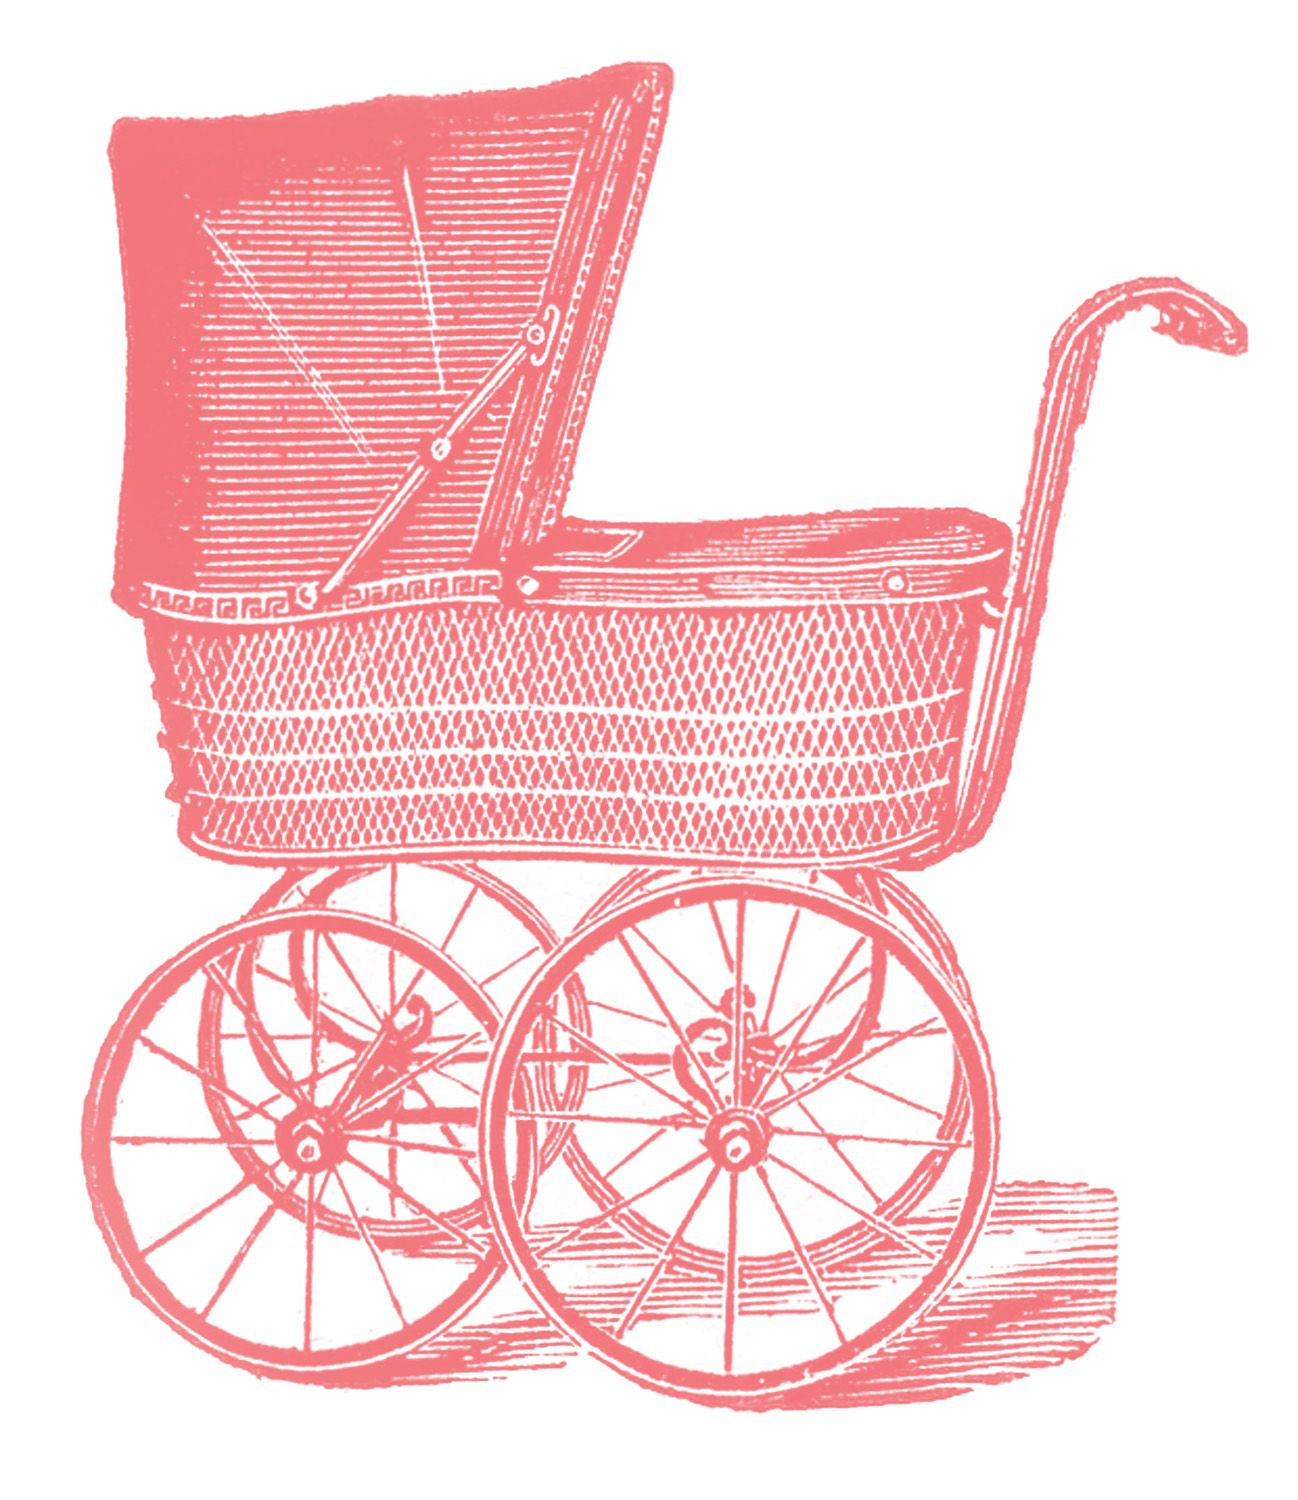 Baby girl vintage carriage clipart banner royalty free download Royalty Free Images - Vintage Baby Carriages | pc babyshower | Baby ... banner royalty free download